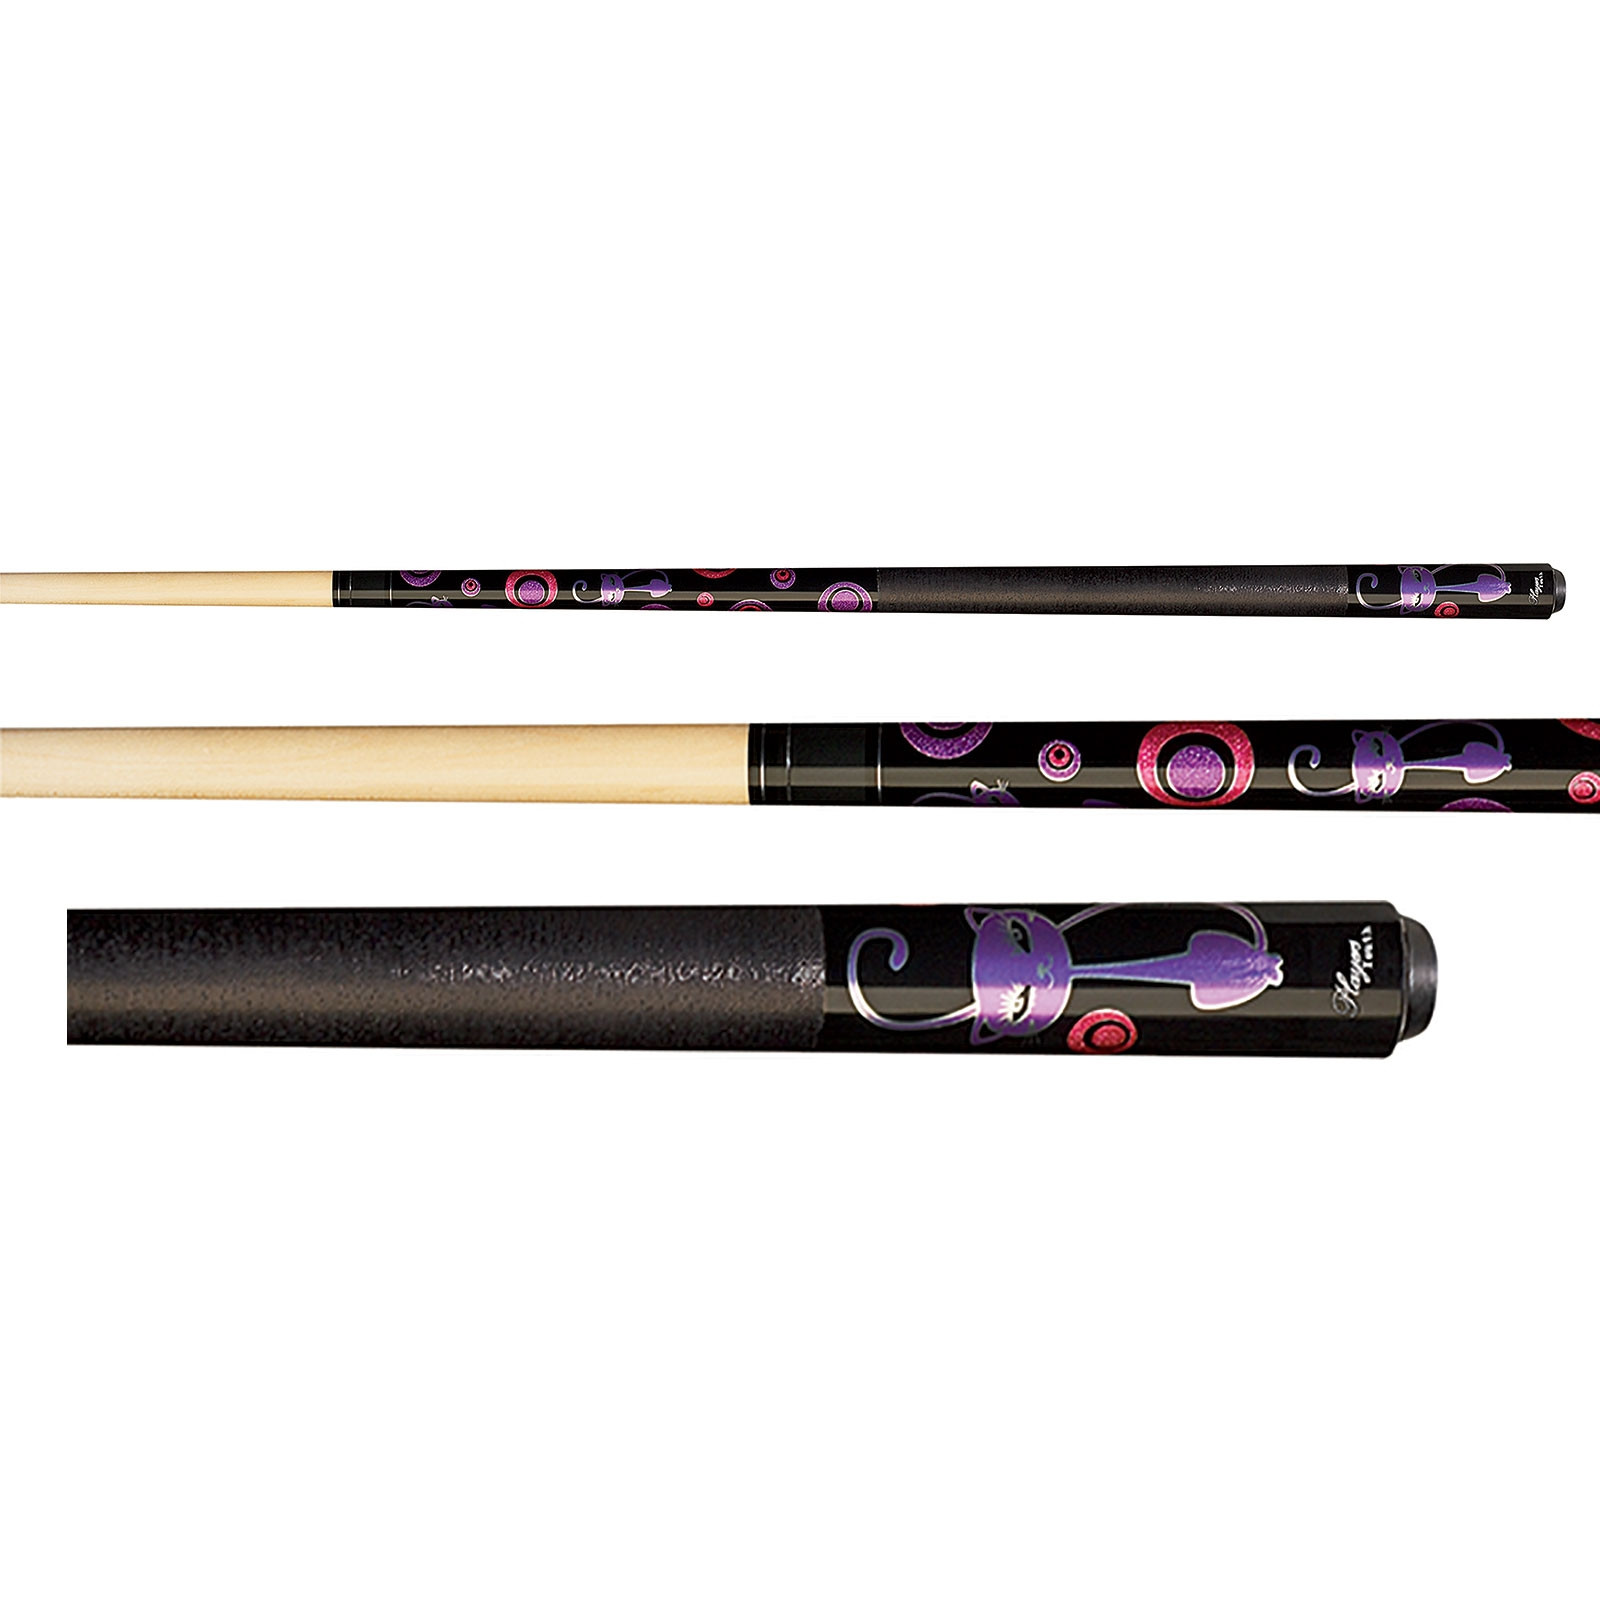 "Players Y-B01 48"" Kids Shortie Pool Cue"